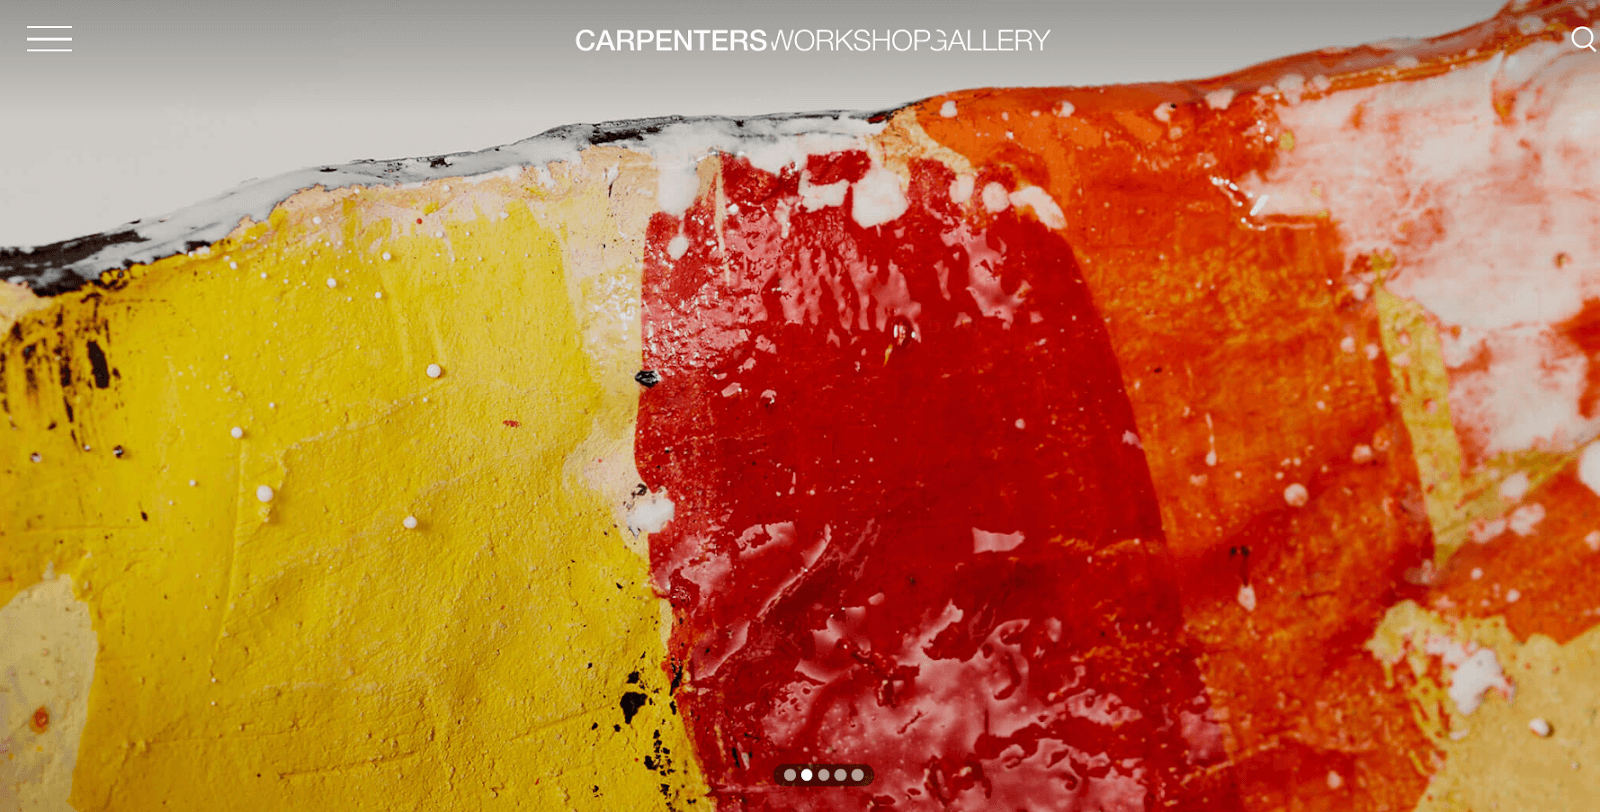 carpentersworkshopgallery Site